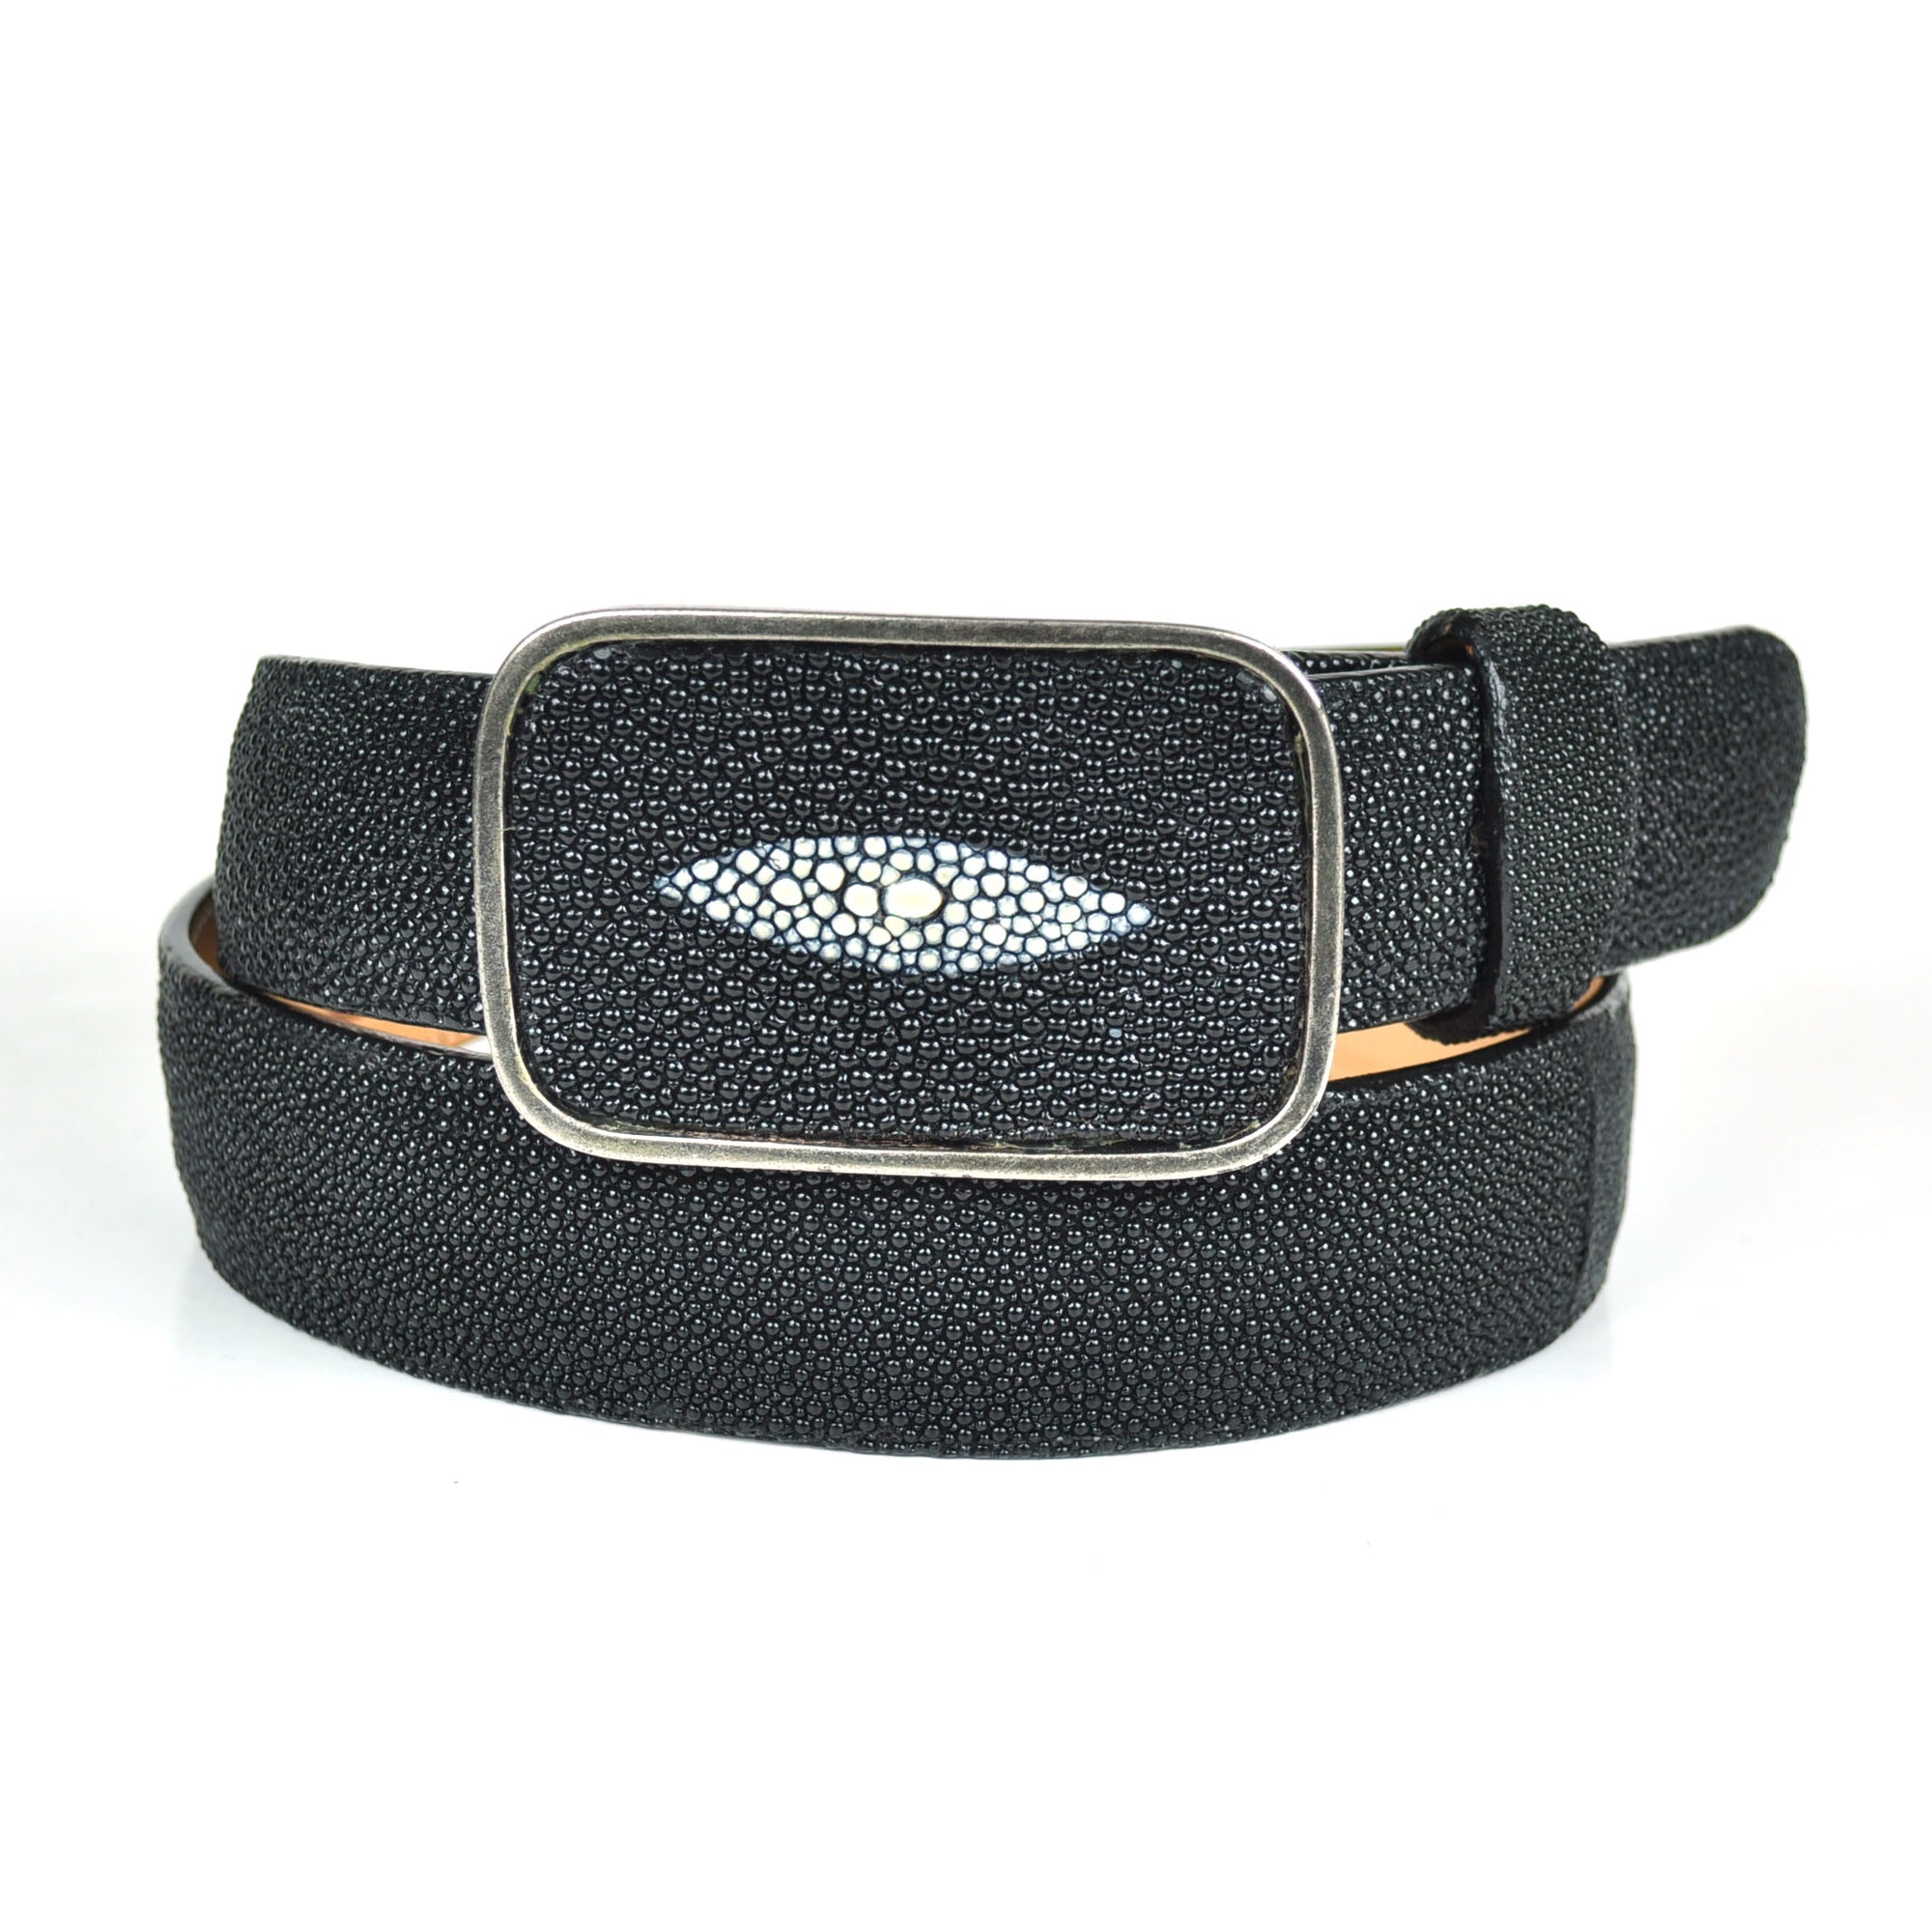 Gavel Men's Stingray Belt - Black